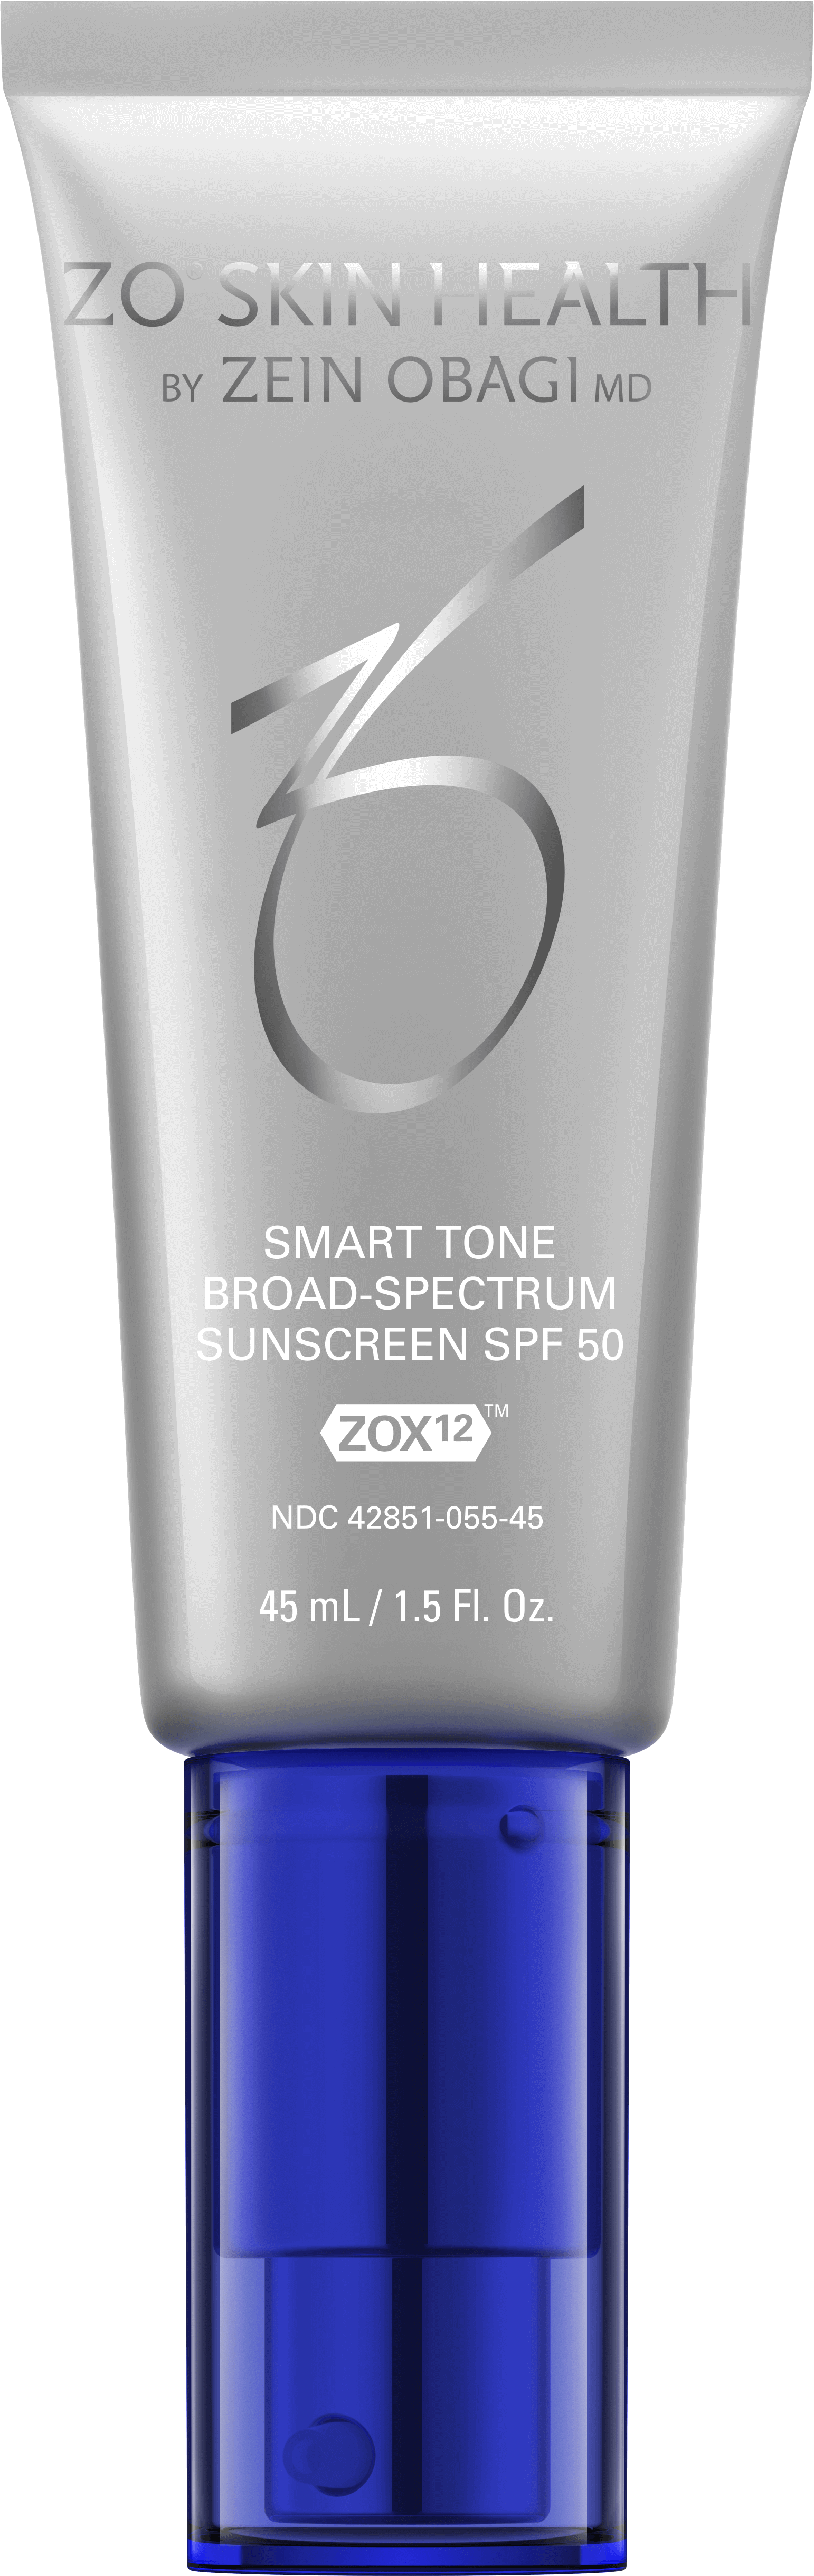 Zo Skin Health - SPF 50 Sunscreen